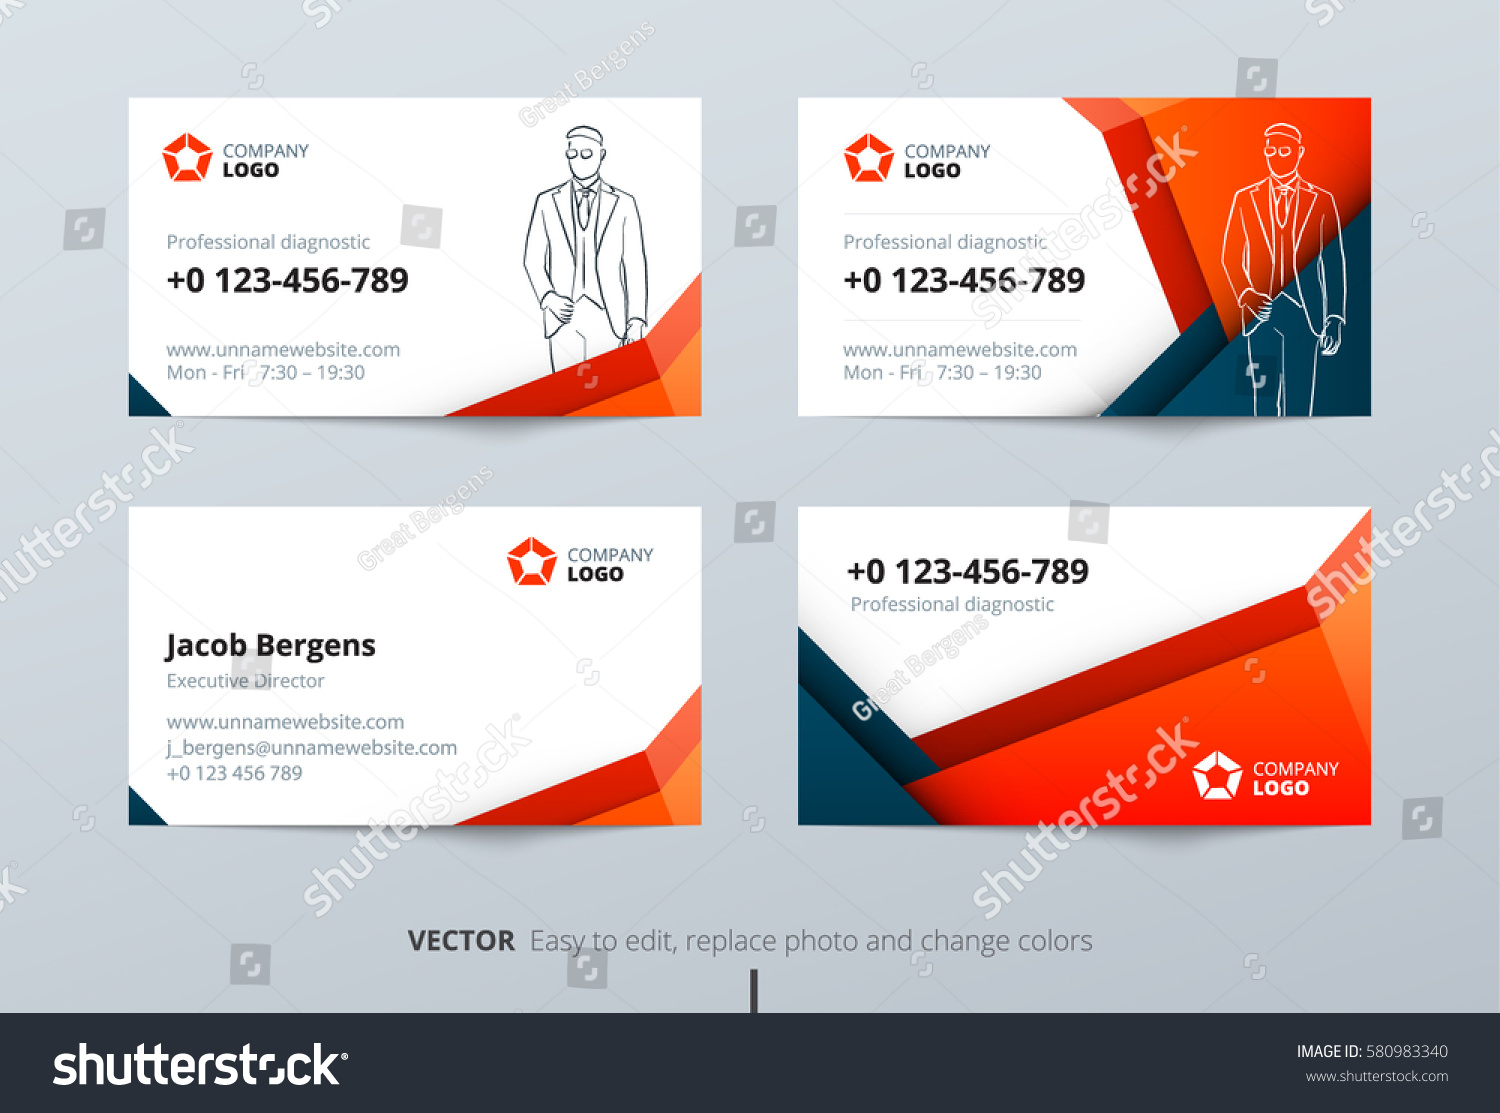 business card design blue orange business のベクター画像素材